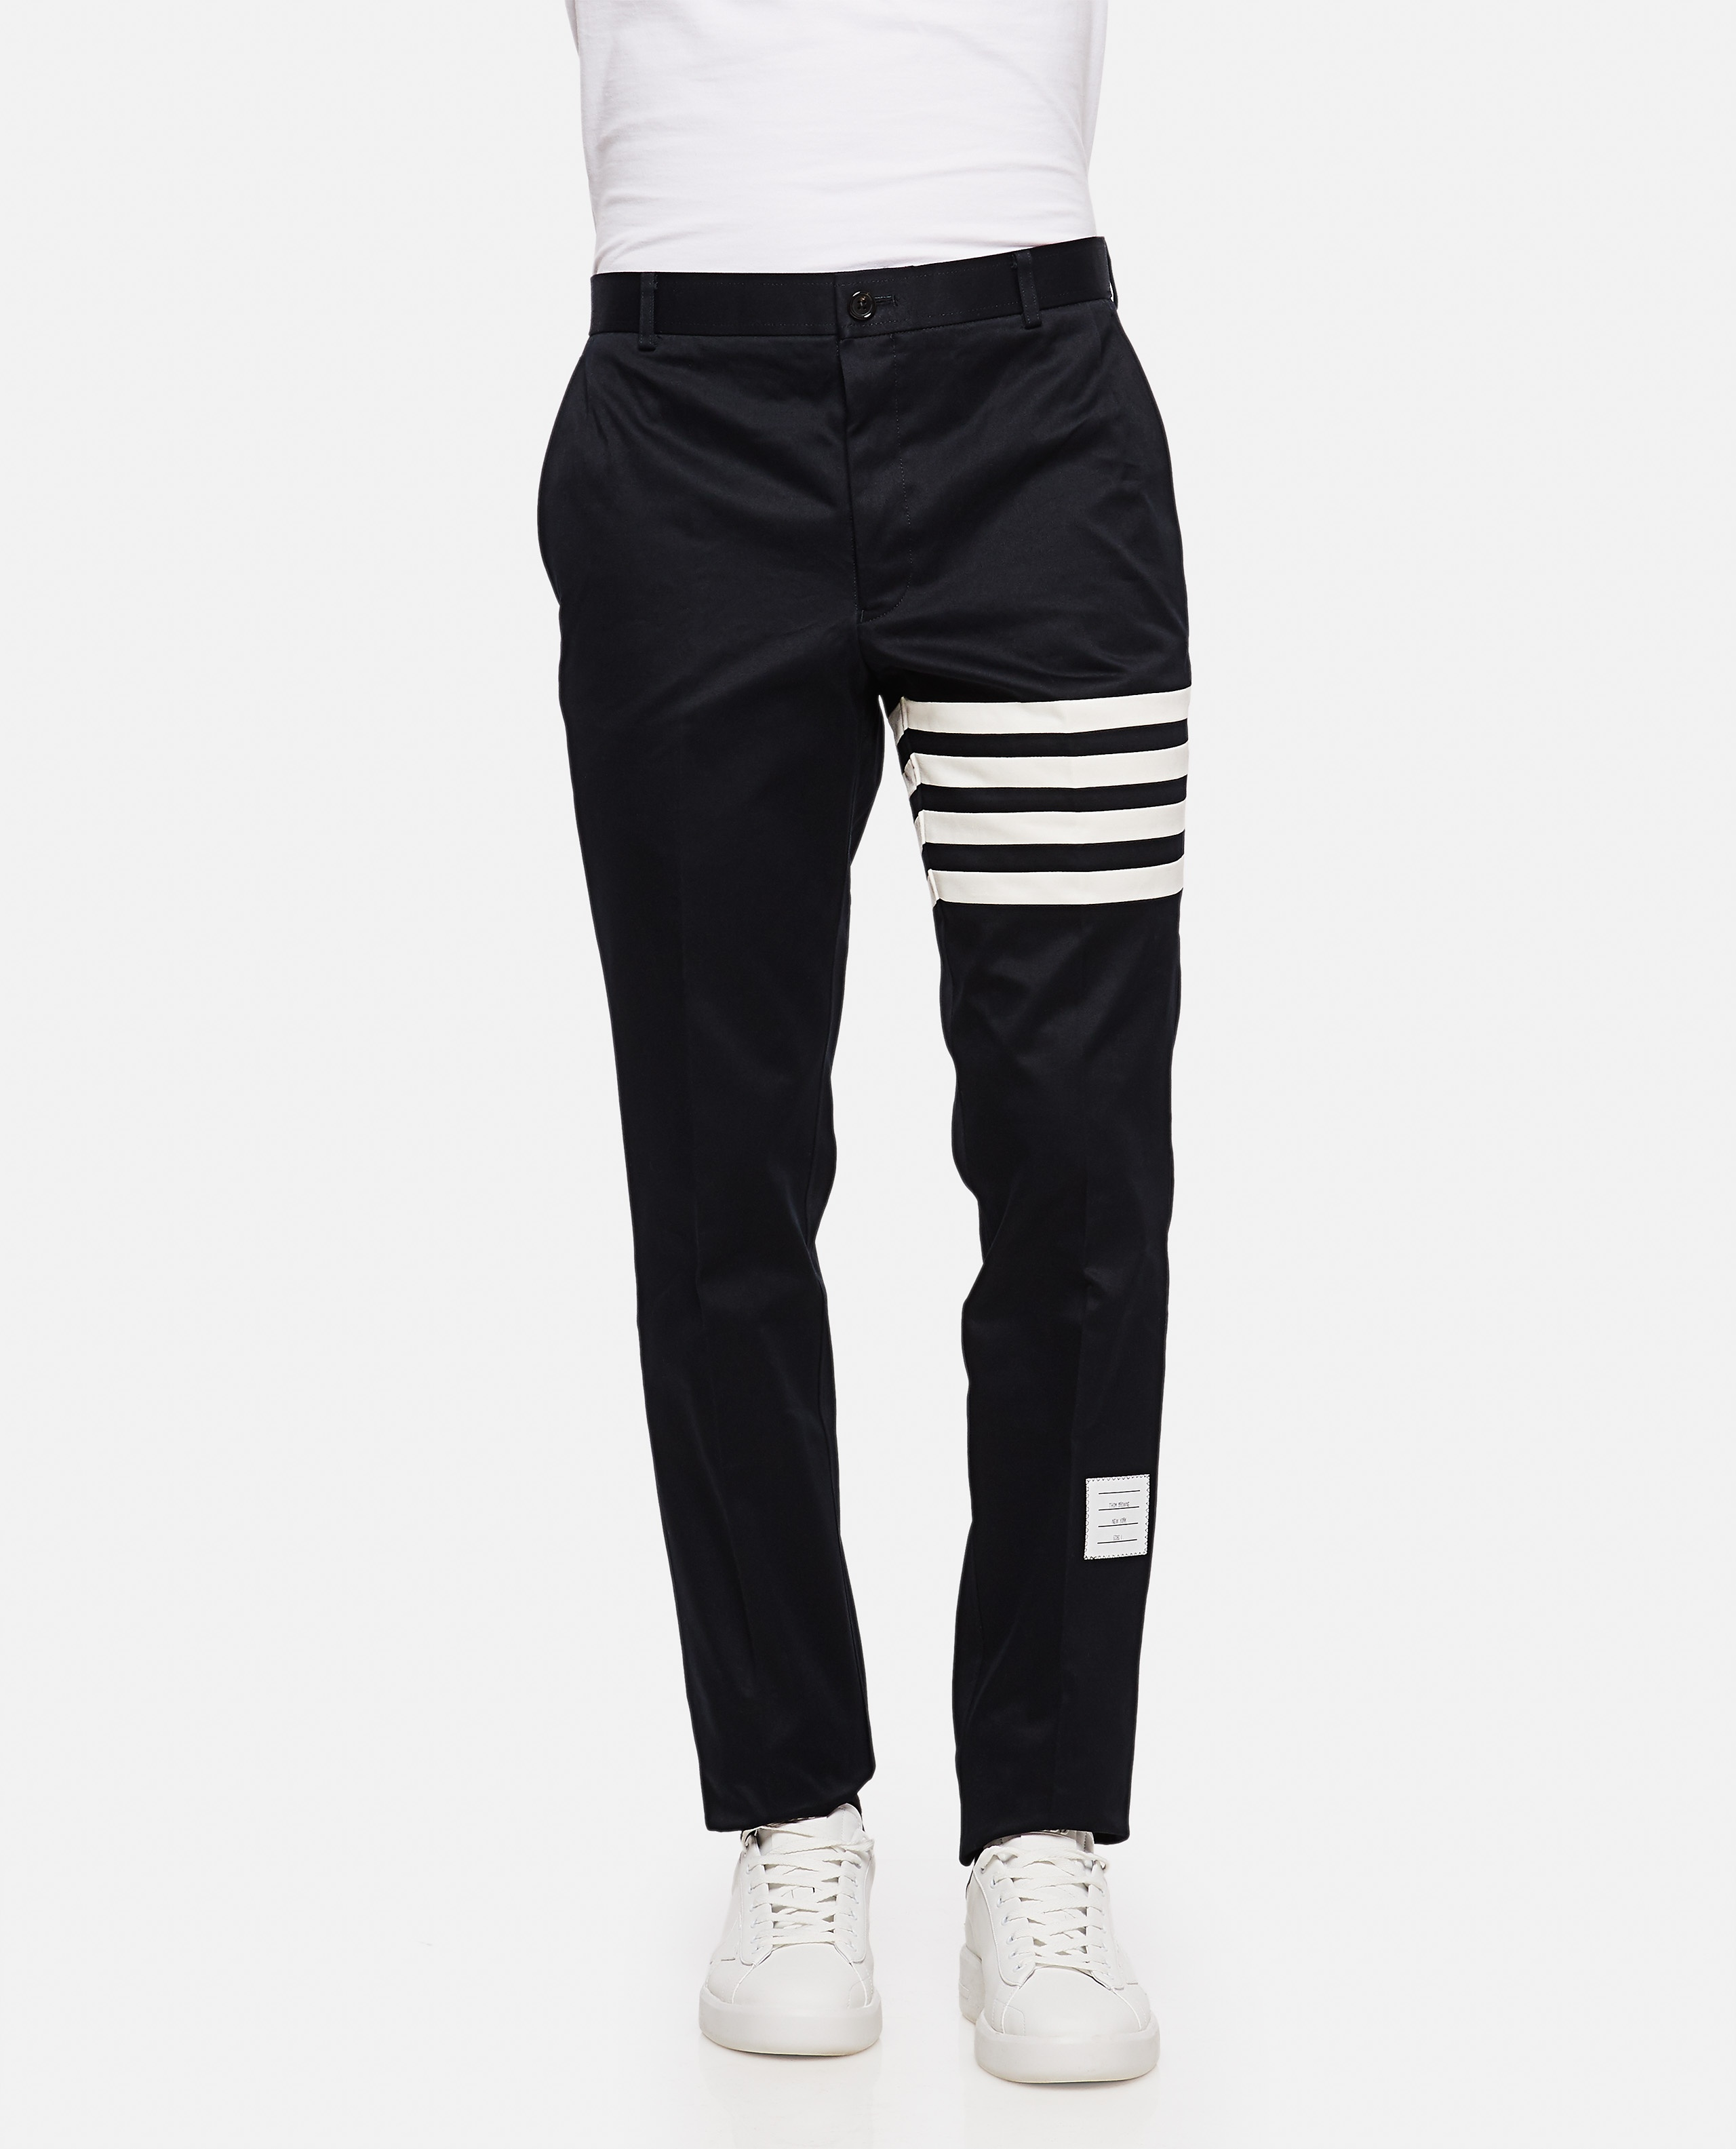 Cotton twill chino trousers Men Thom Browne 000110820016816 1